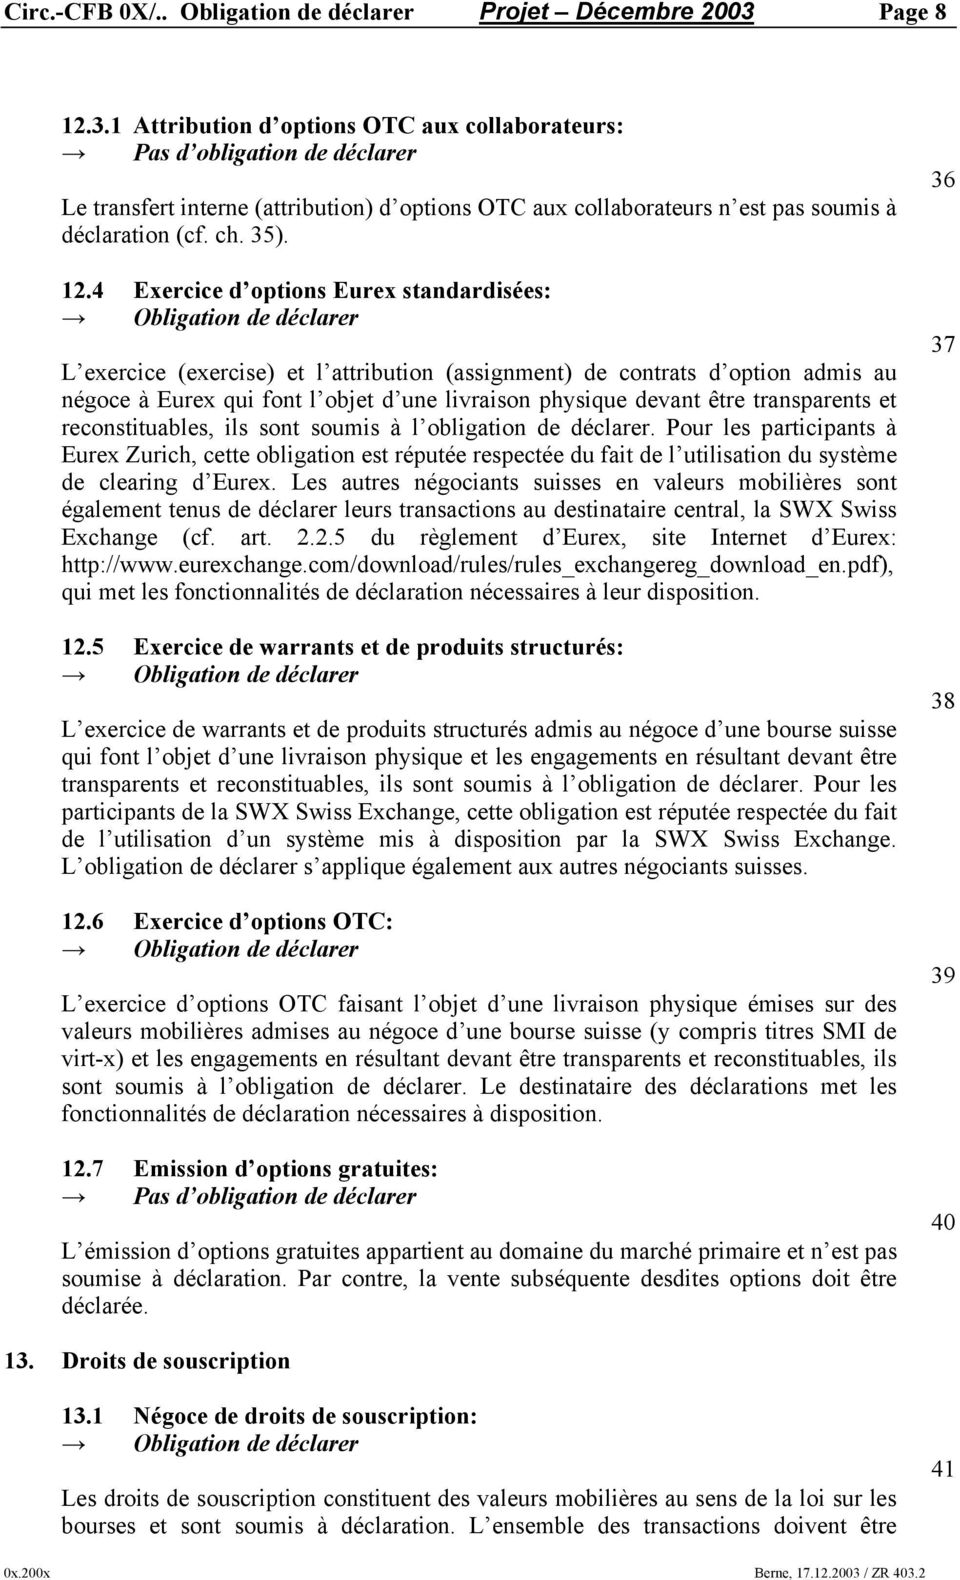 3.1 Attribution d options OTC aux collaborateurs: Le transfert interne (attribution) d options OTC aux collaborateurs n est pas soumis à déclaration (cf. ch. 35). 12.